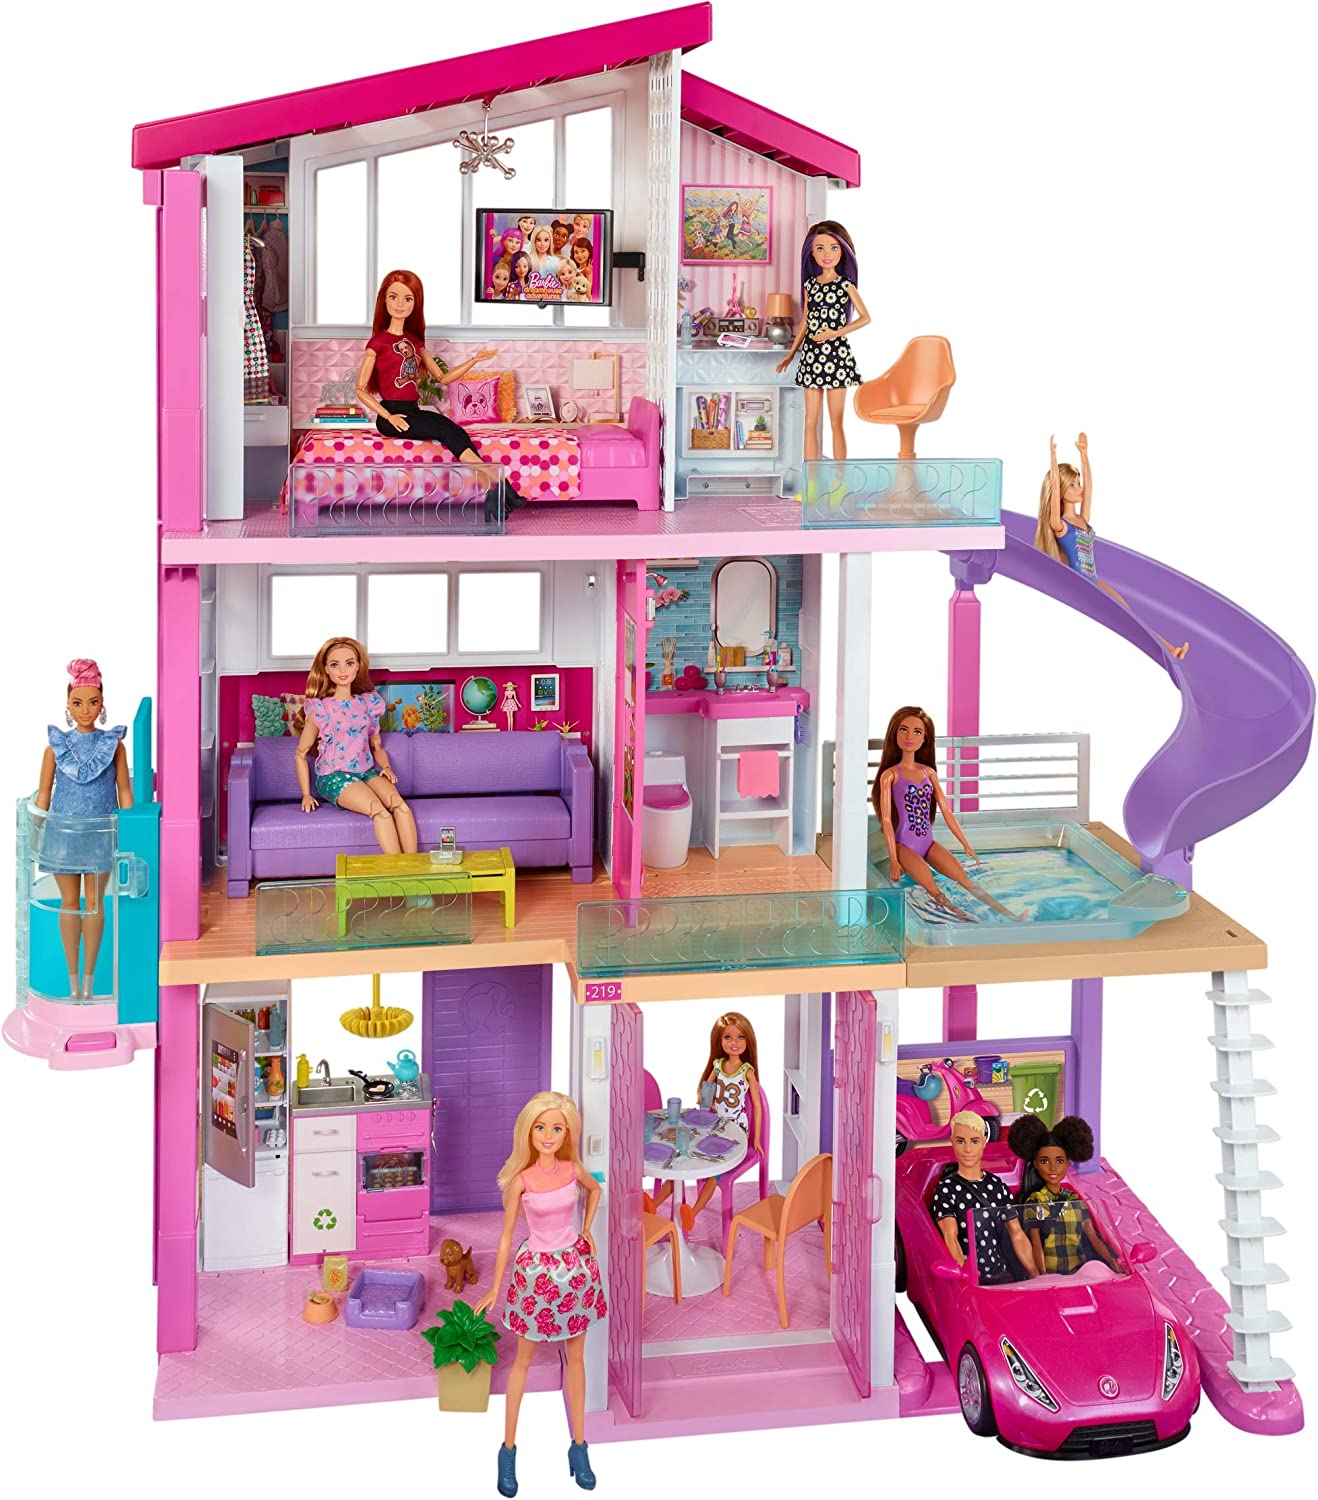 Review of Barbie Dreamhouse Dollhouse with Pool, Slide and Elevator